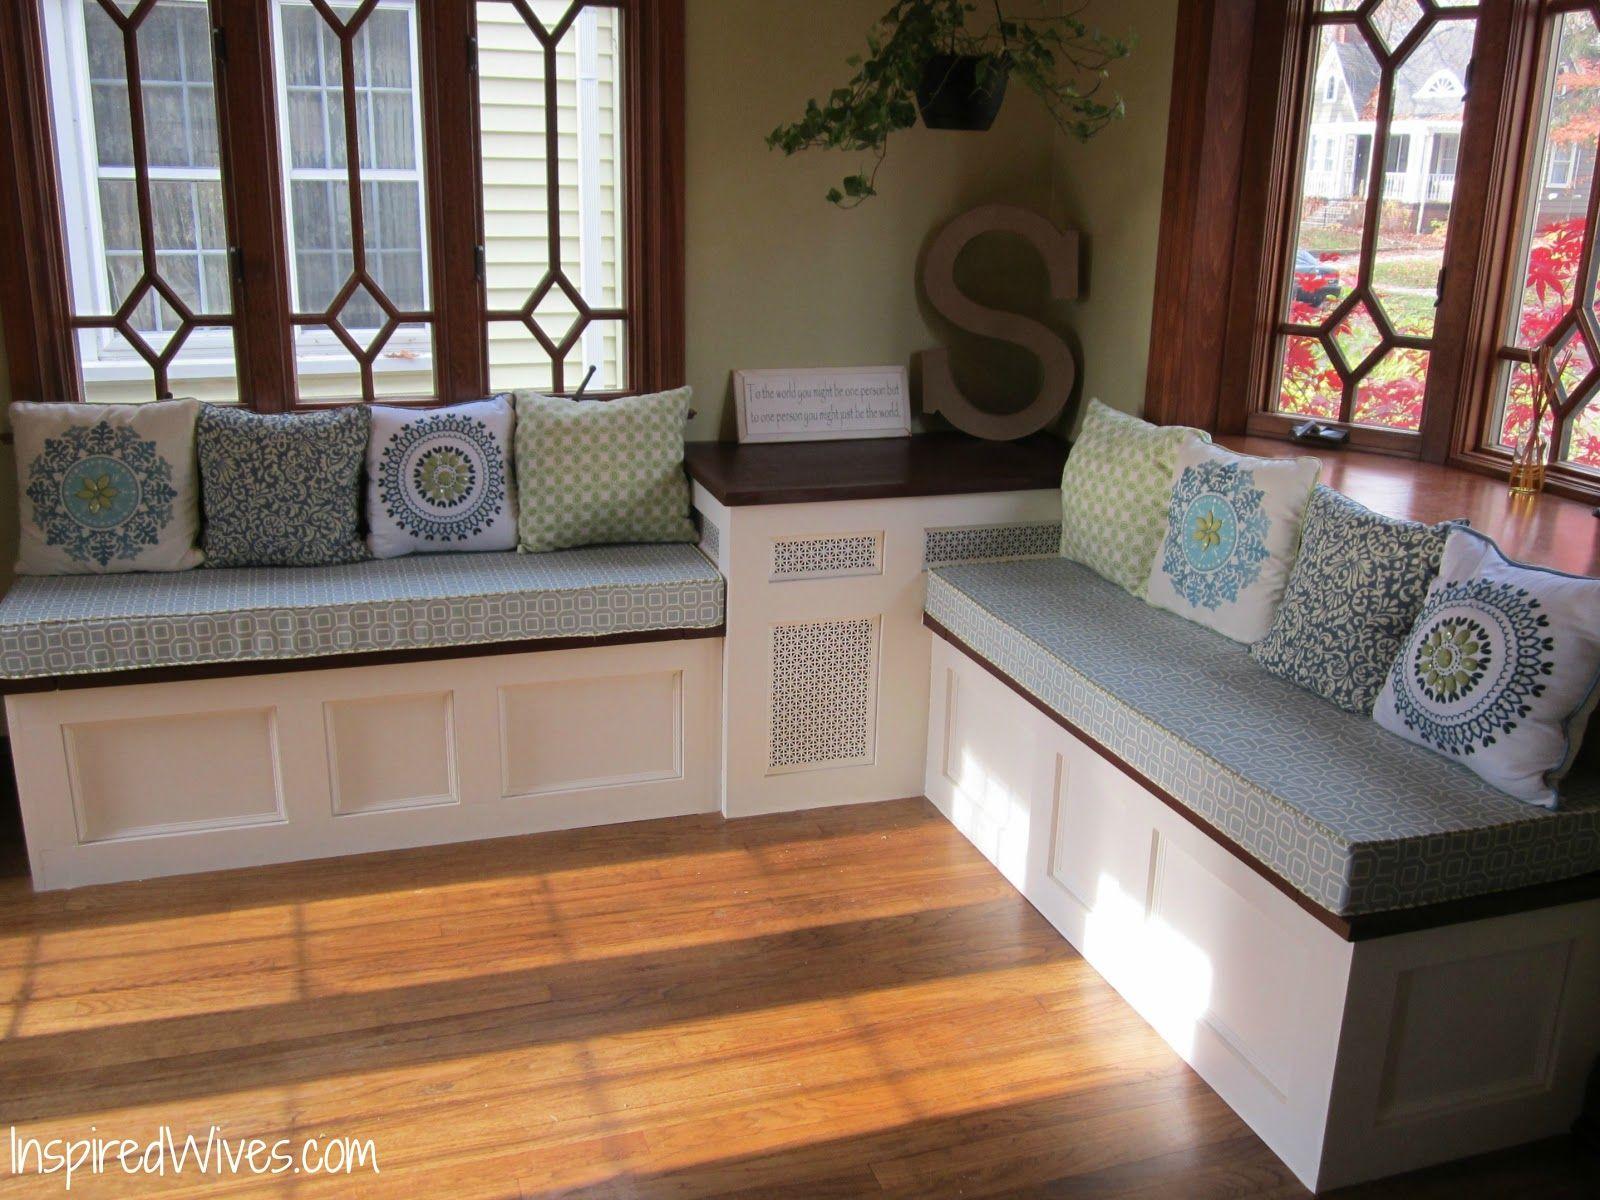 kitchen nooks with storage benches Inspired Wives How